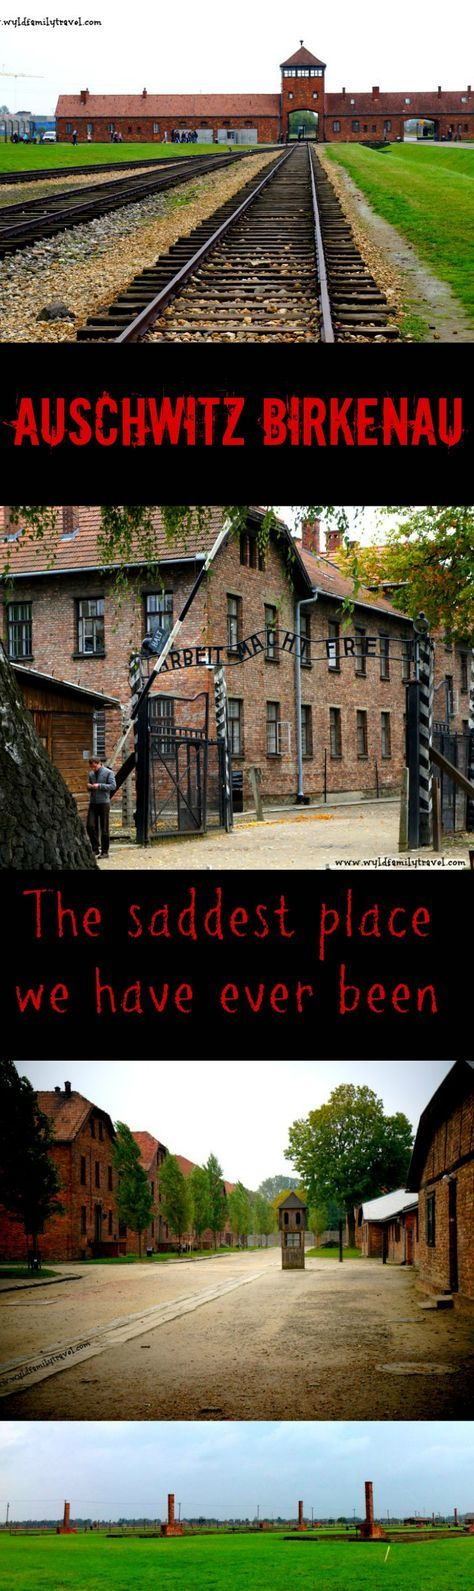 We visited Auschwitz - Birkenau in the summer of 2013.We were moved to tears more than once, it is the saddest place we have ever been. It is somewhere everyone should go at least once to remind us not to repeat the past.